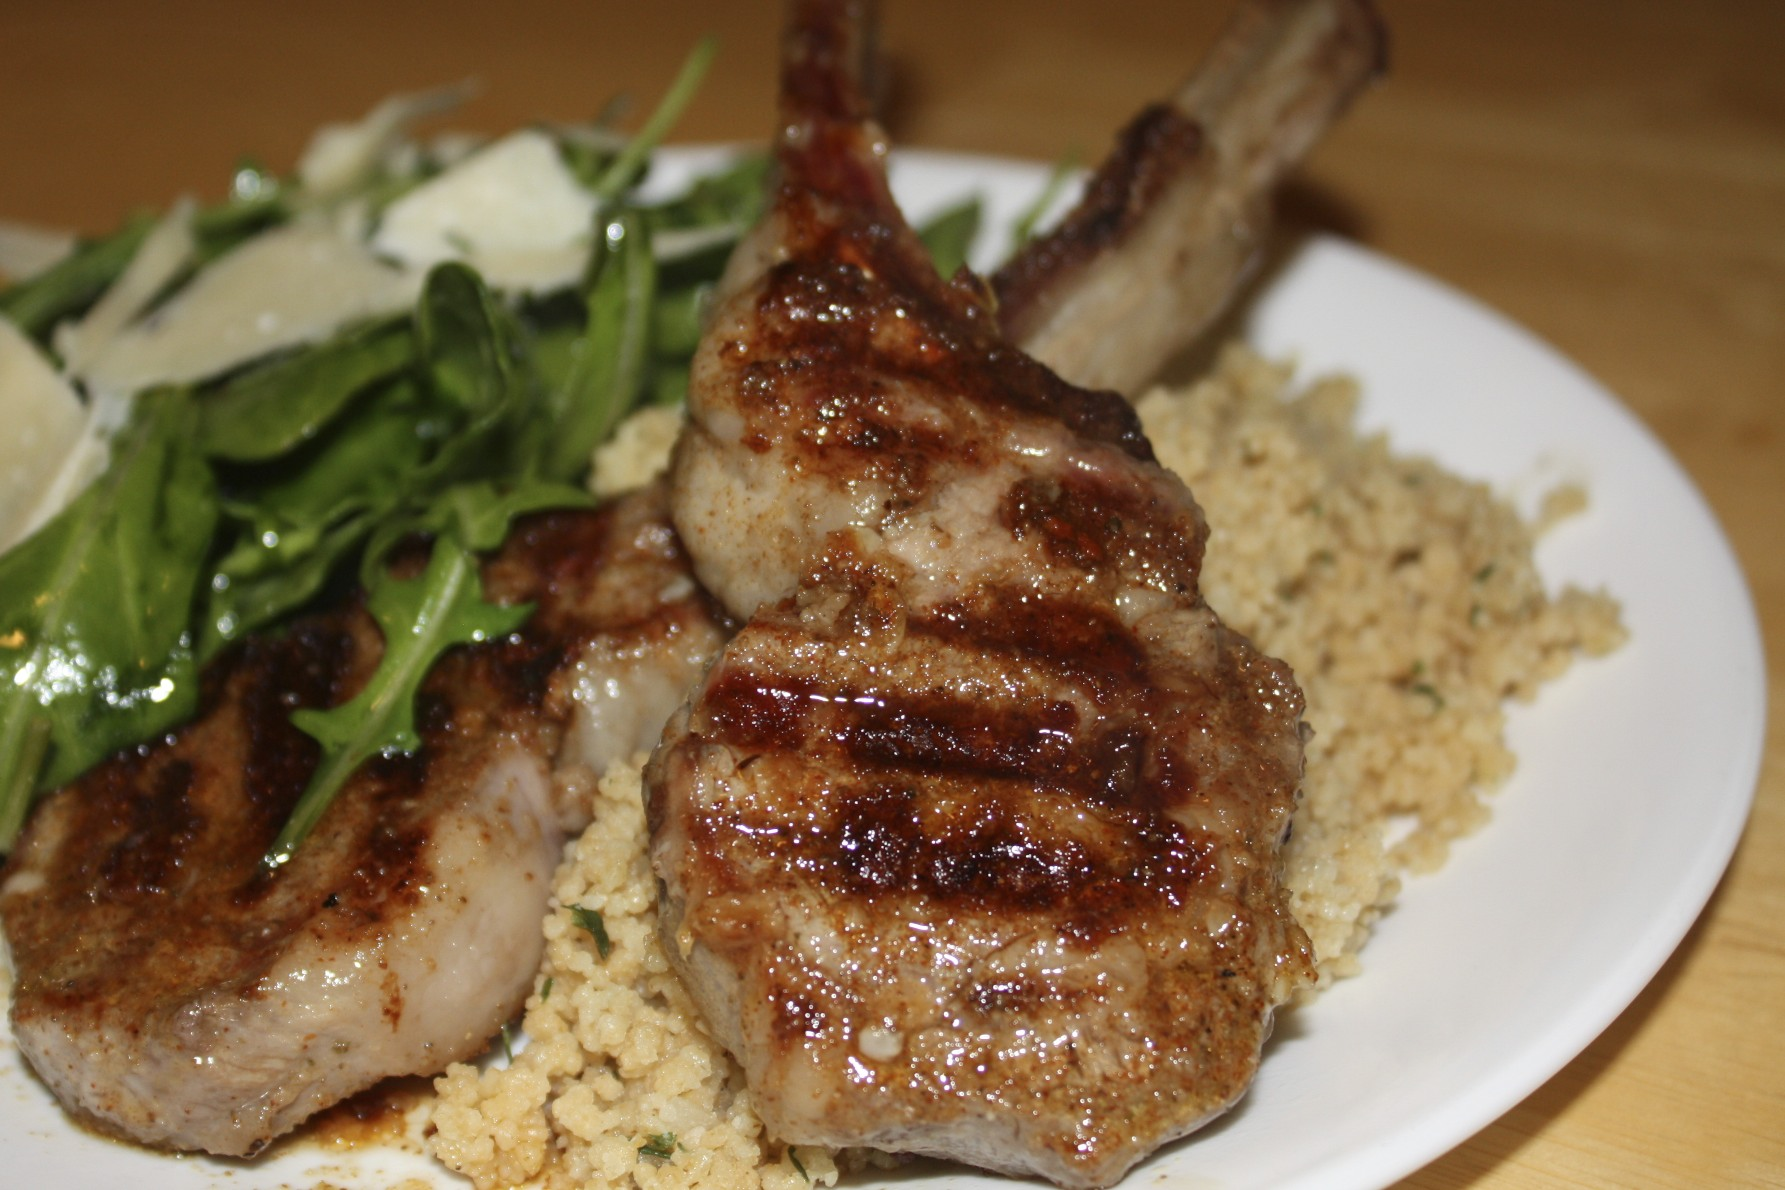 How to cook lamb on the grill